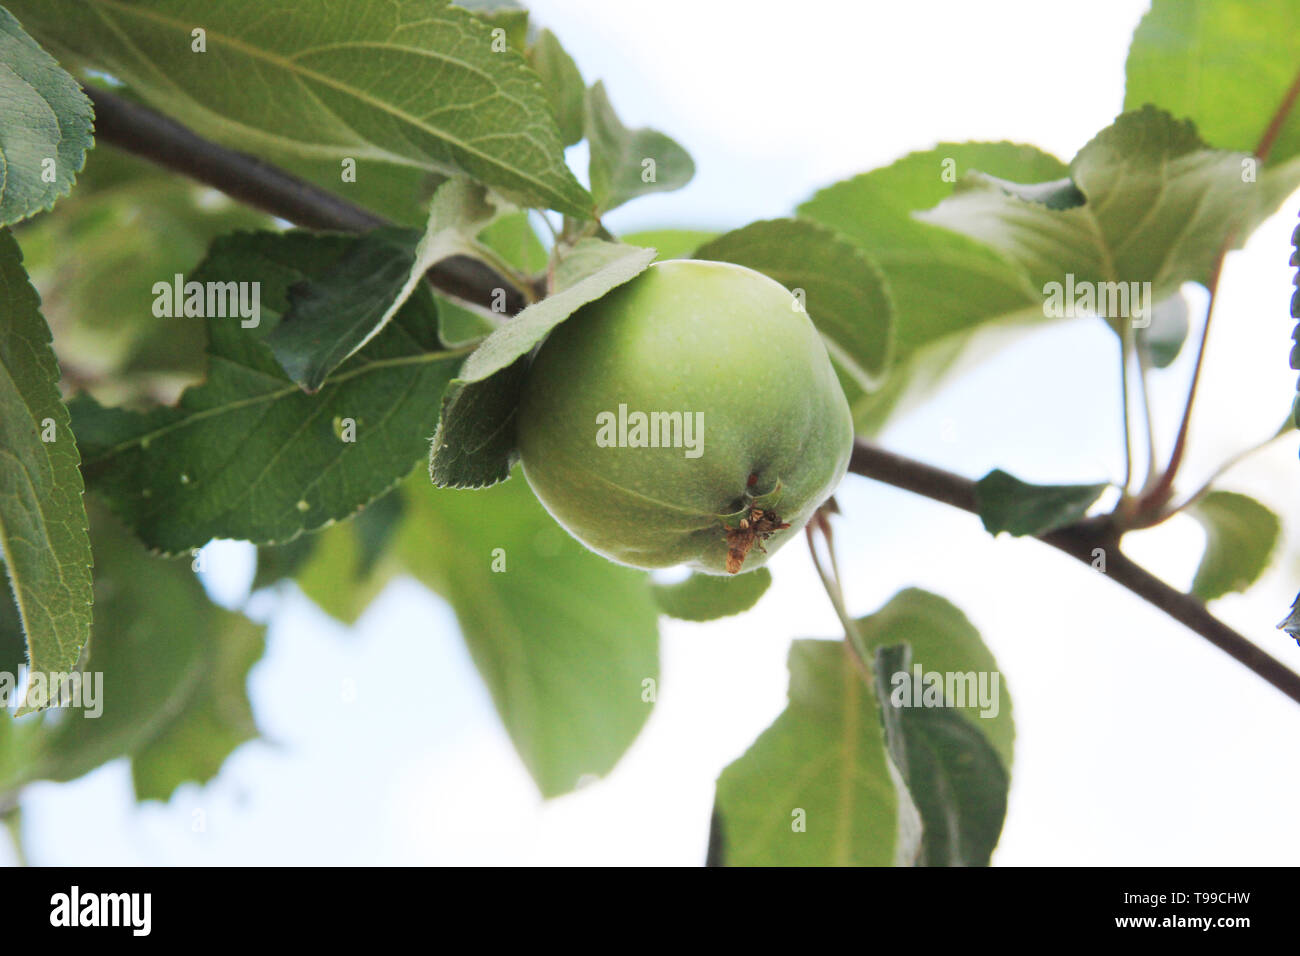 The green apple is ripening on the branch of the apple tree. Closeup - Stock Image